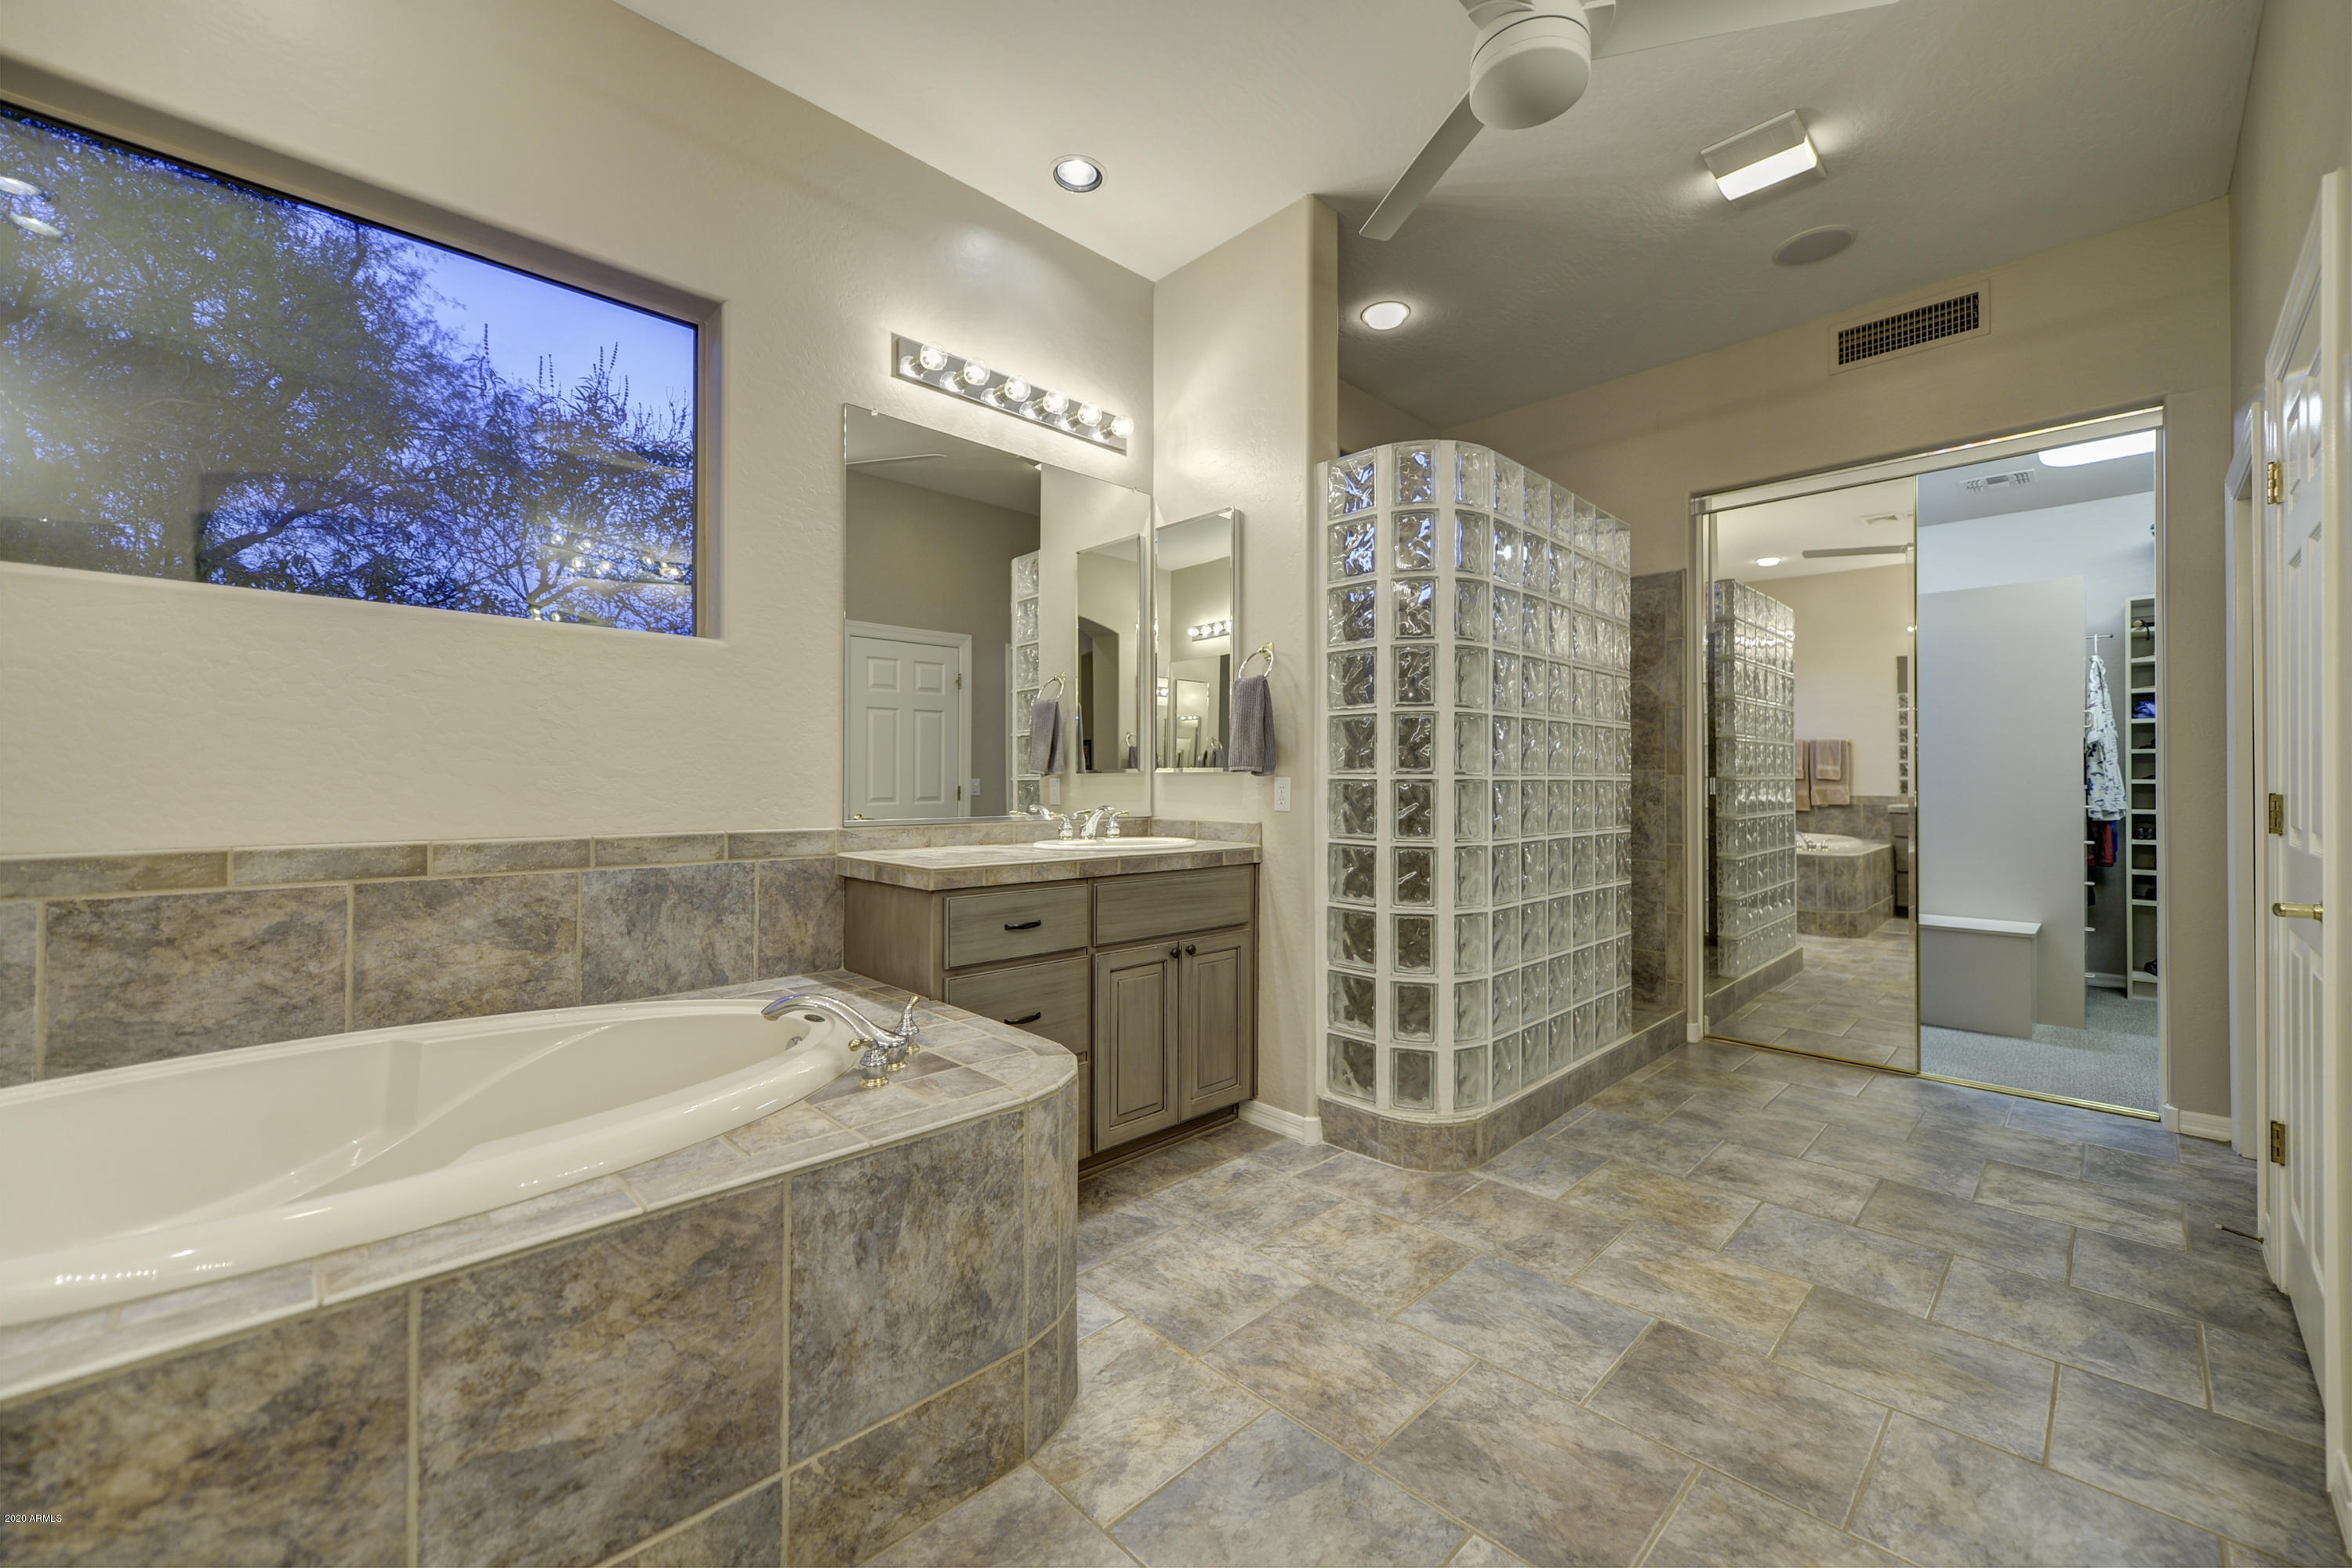 6069 IRONWOOD Drive, Scottsdale, Arizona 85266, 5 Bedrooms Bedrooms, ,4.5 BathroomsBathrooms,Residential,For Sale,IRONWOOD,6155986